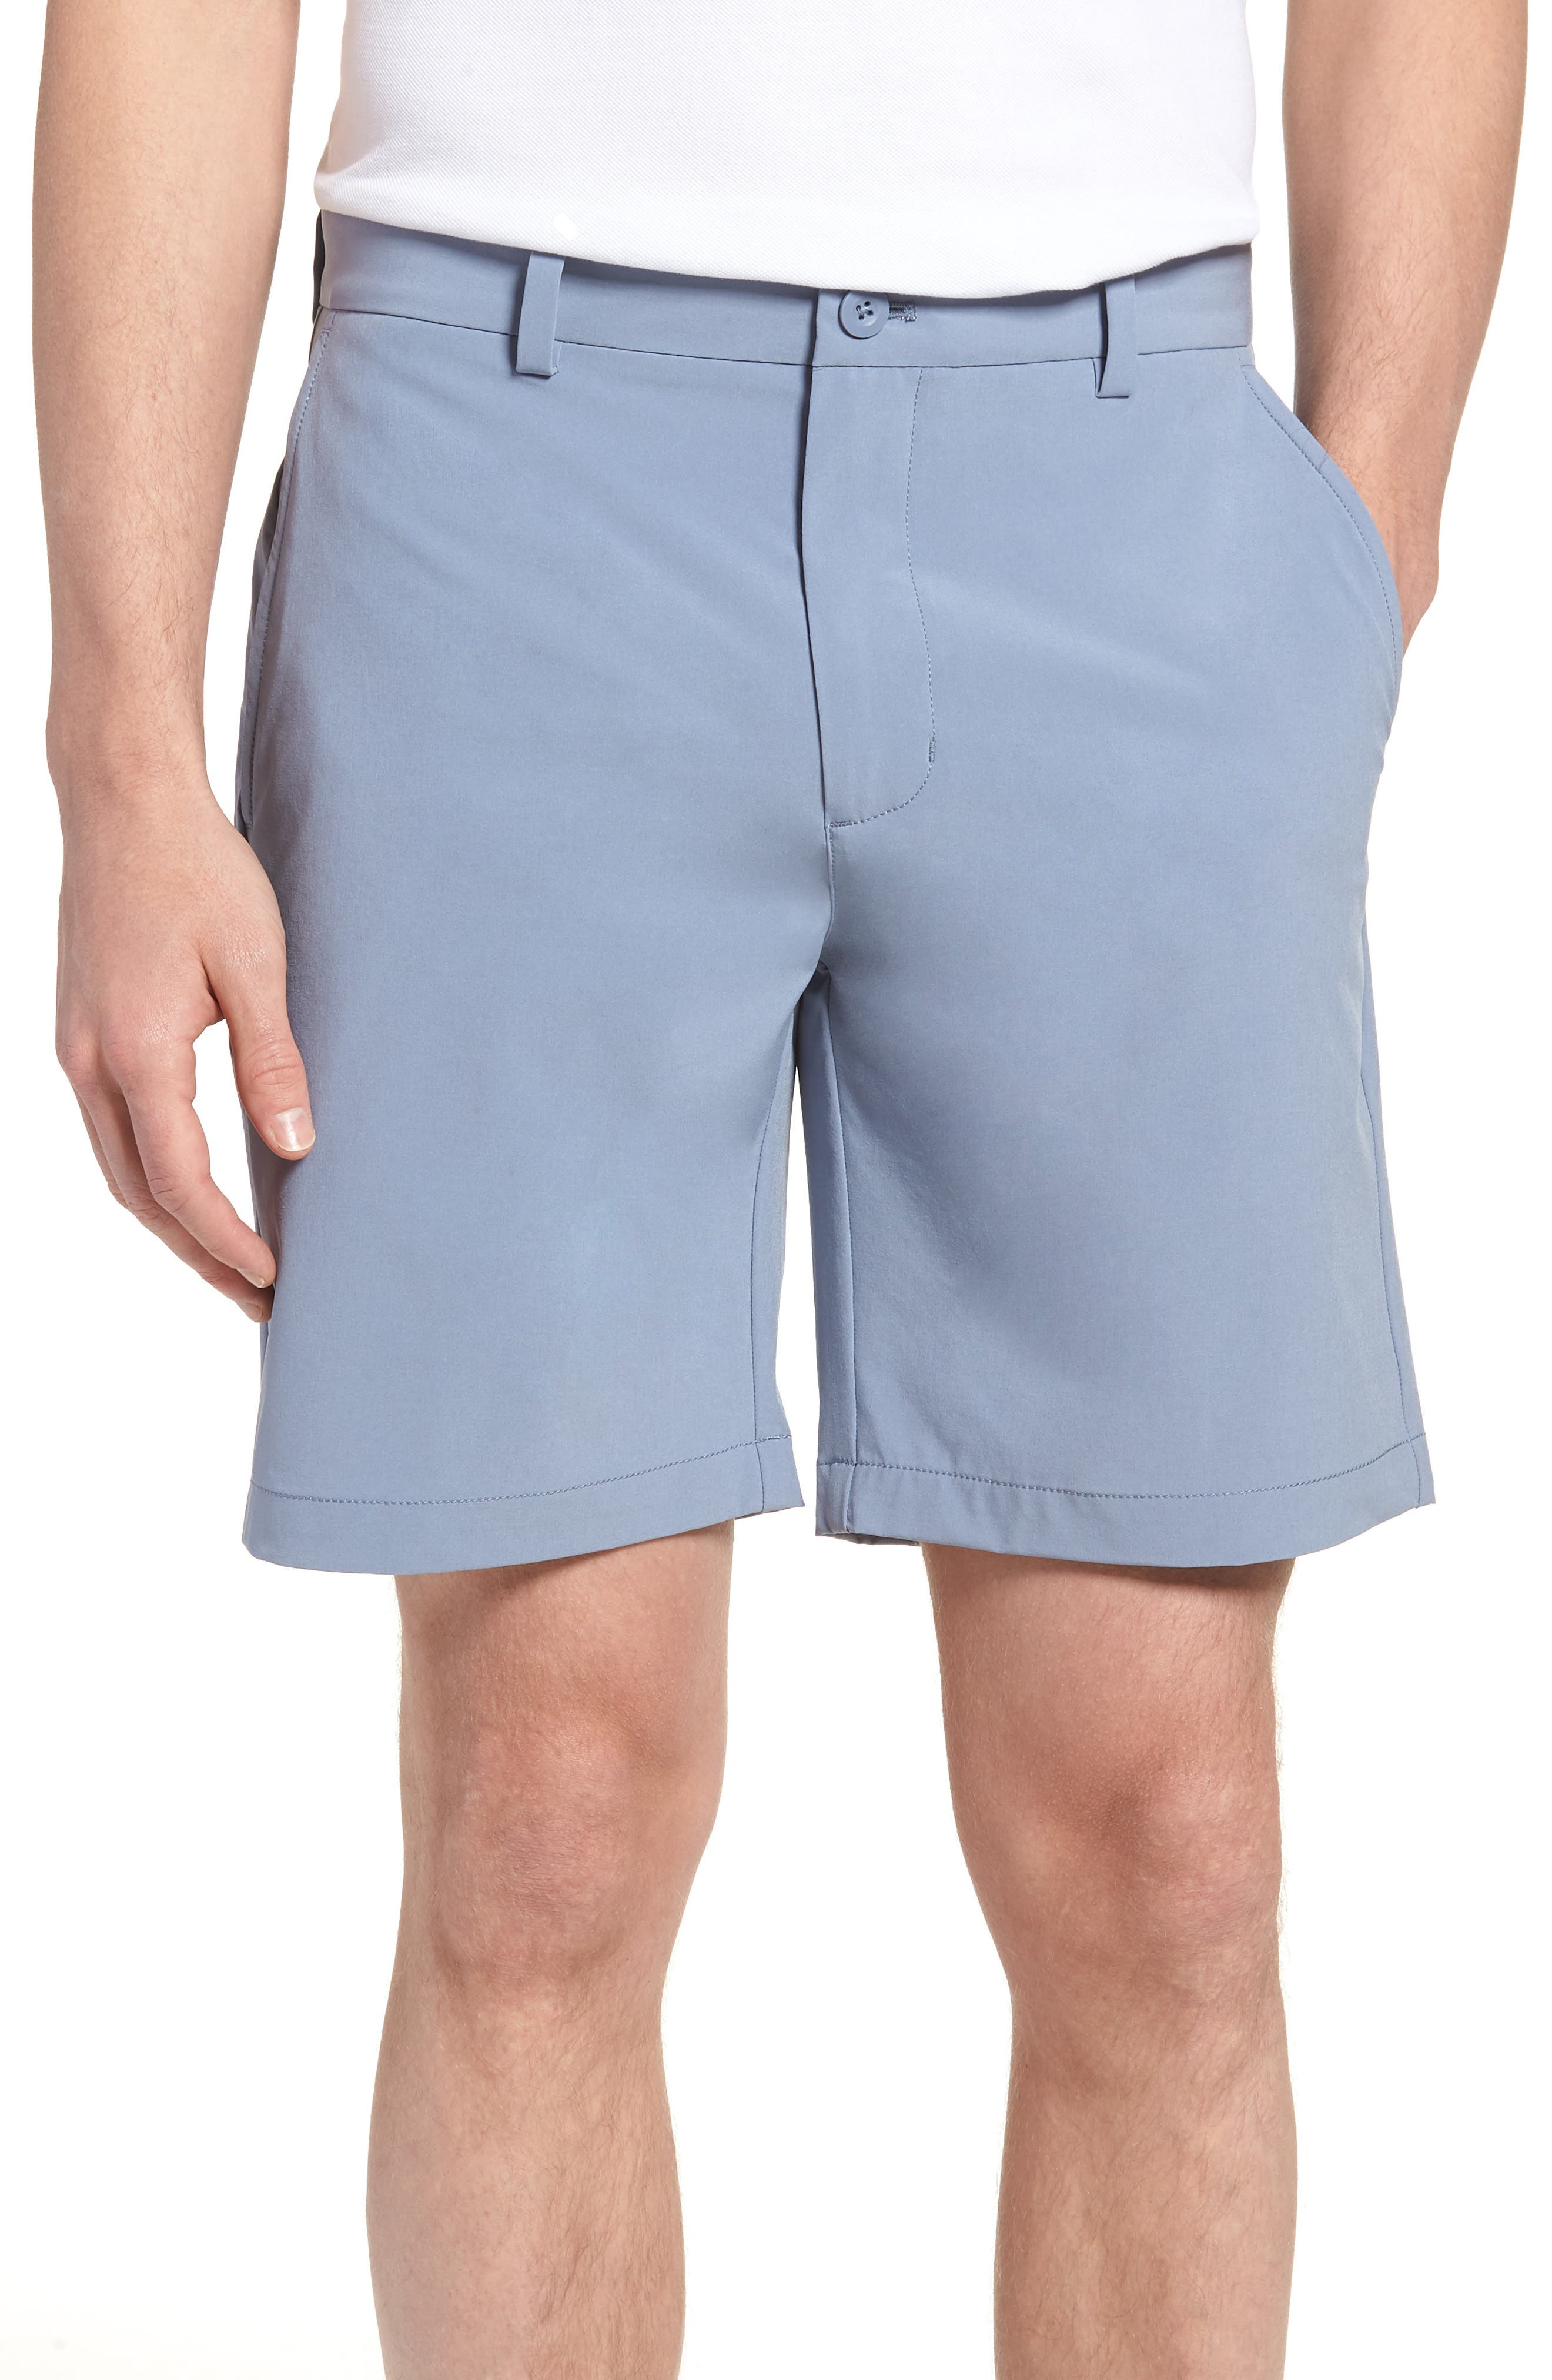 8 Inch Performance Breaker Shorts,                             Main thumbnail 1, color,                             Shark